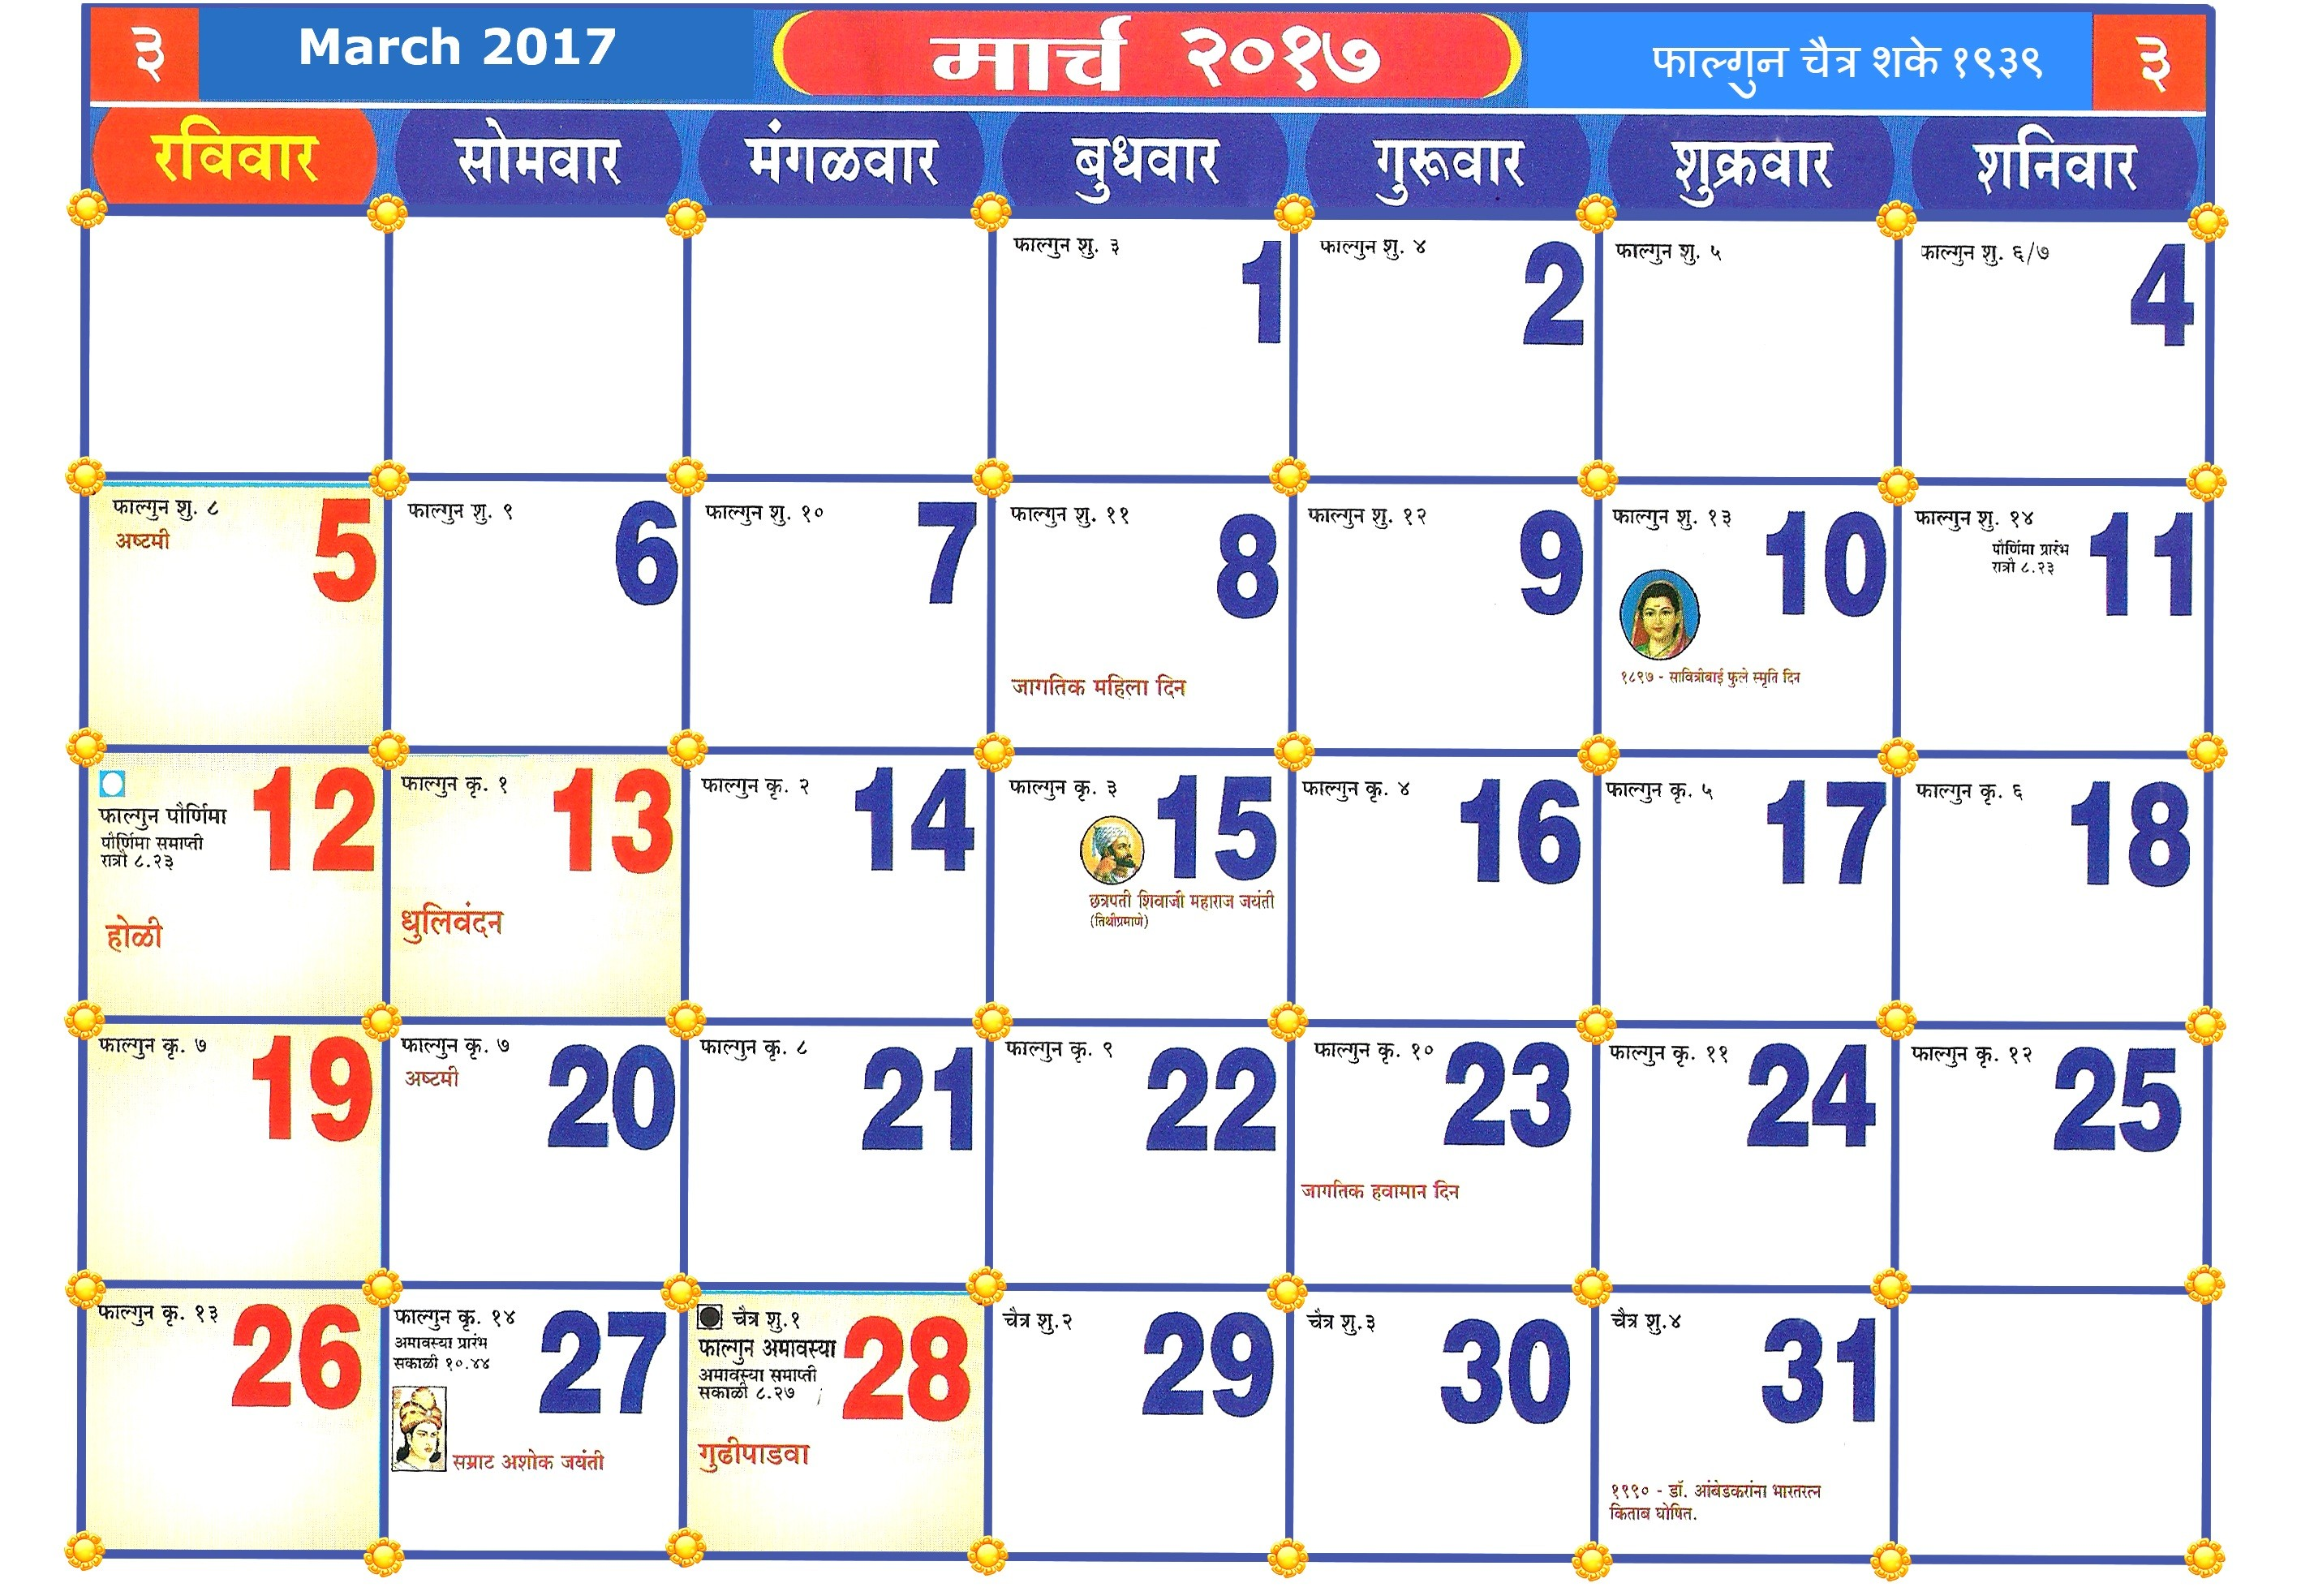 March 2018 Calendar Kalnirnay Más Reciente September 2016 Calendar Marathi T Of March 2018 Calendar Kalnirnay Más Arriba-a-fecha March Calendar 2015 Blank September 2016 Calendar Free to and Print